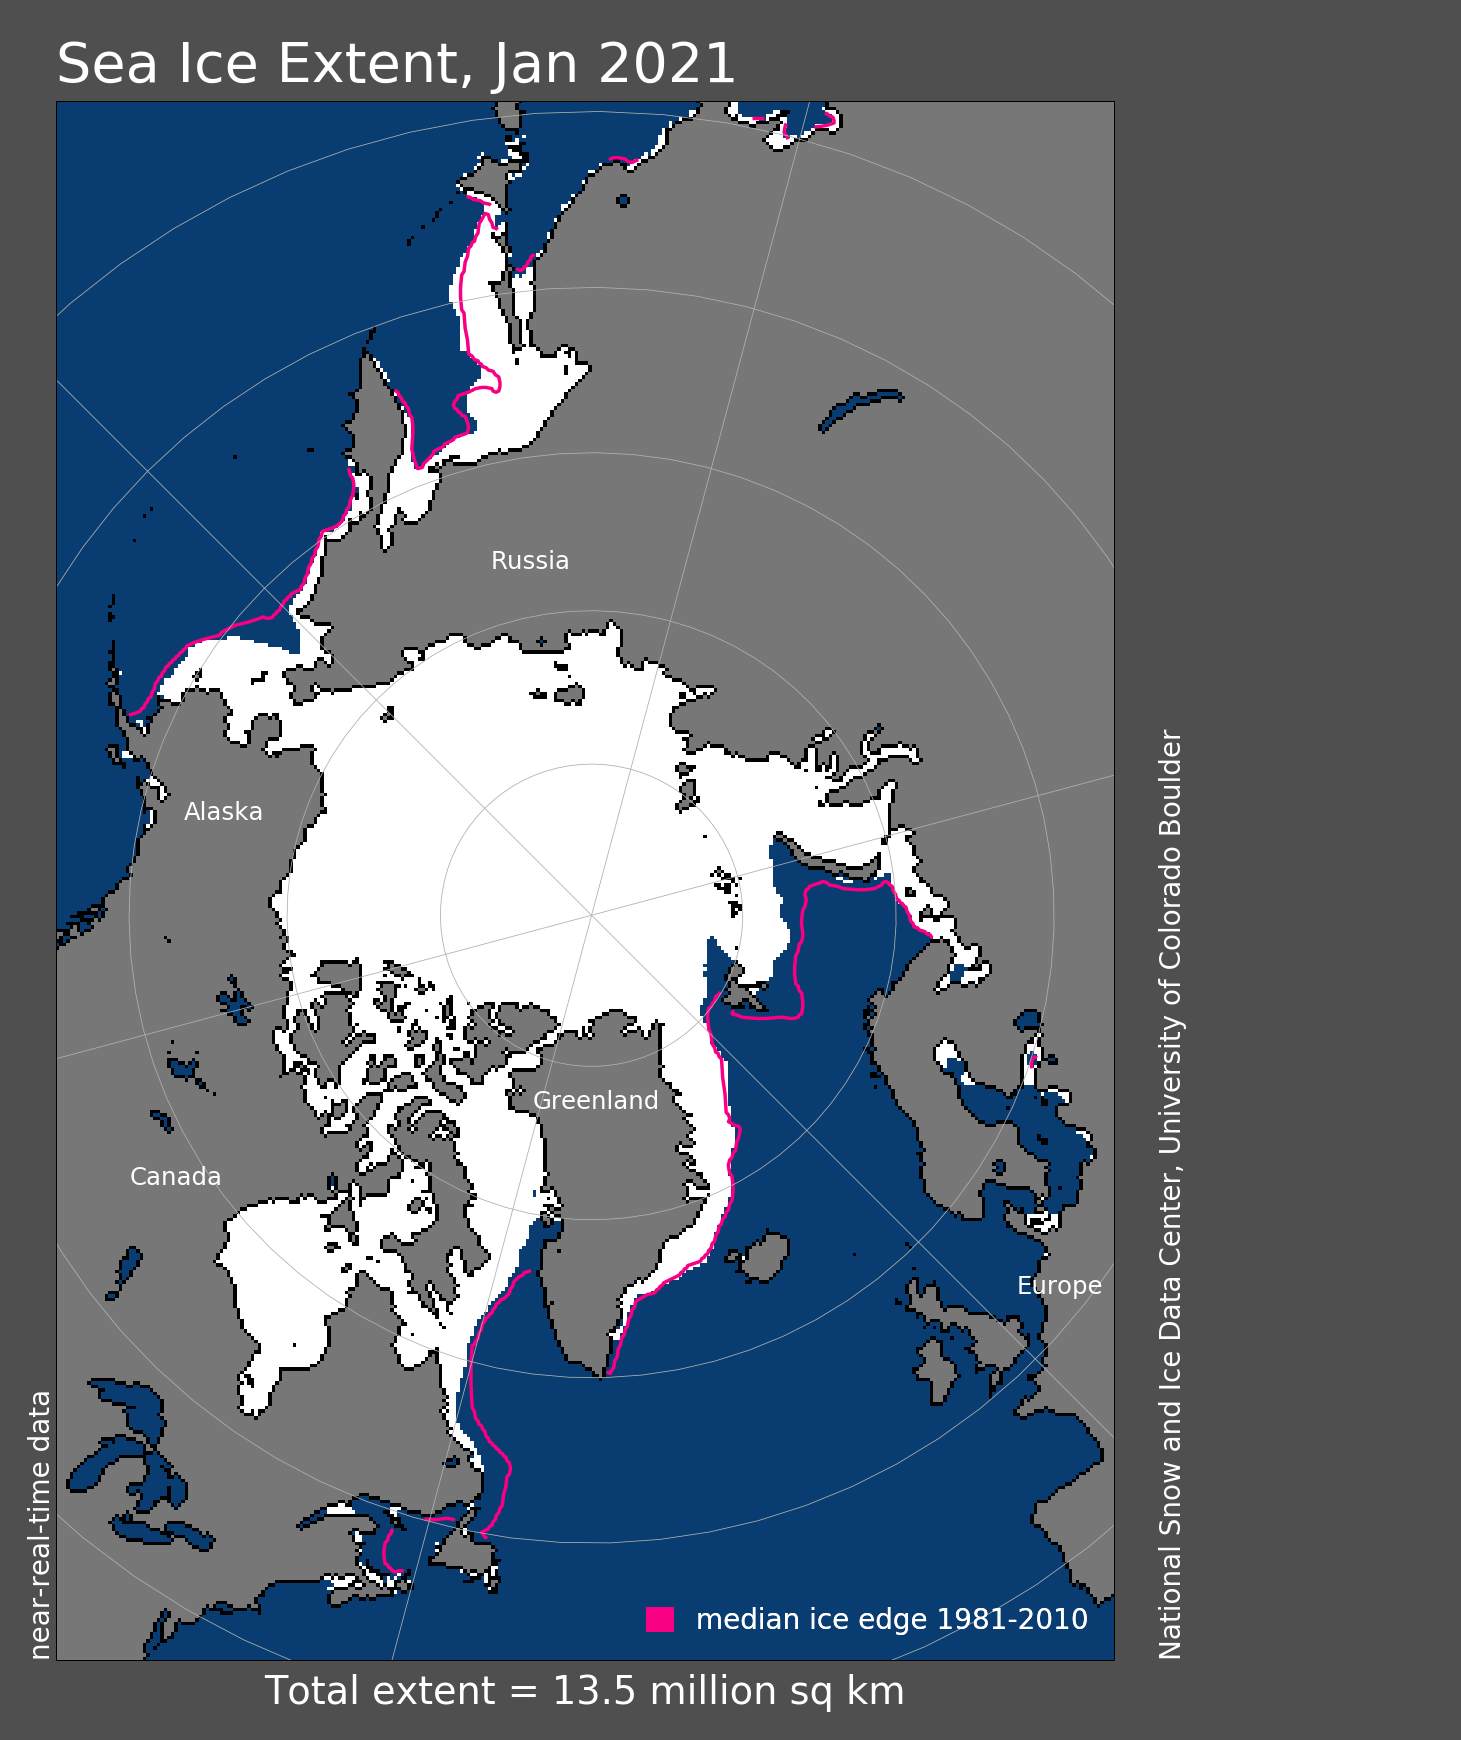 Source: National Snow & Ice Data Center